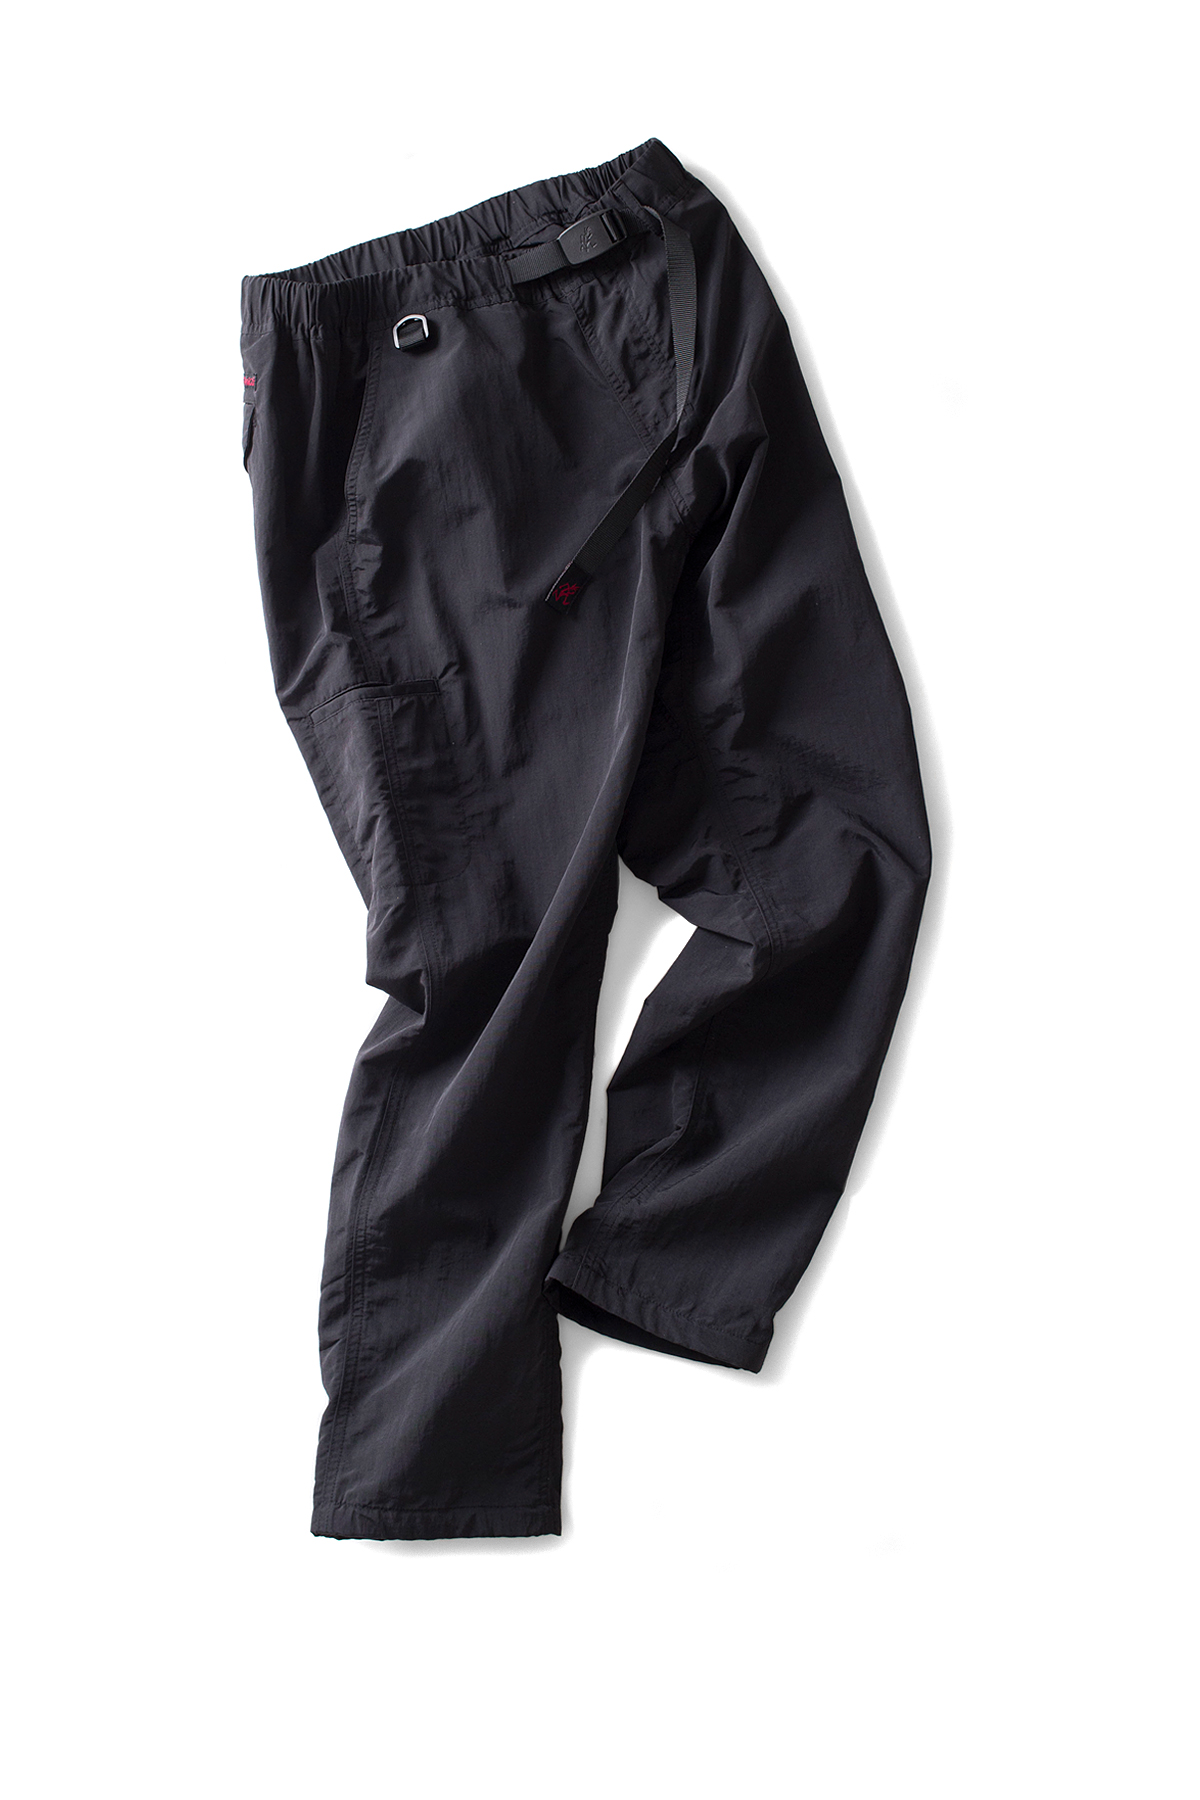 Gramicci : Track Pants (Black)